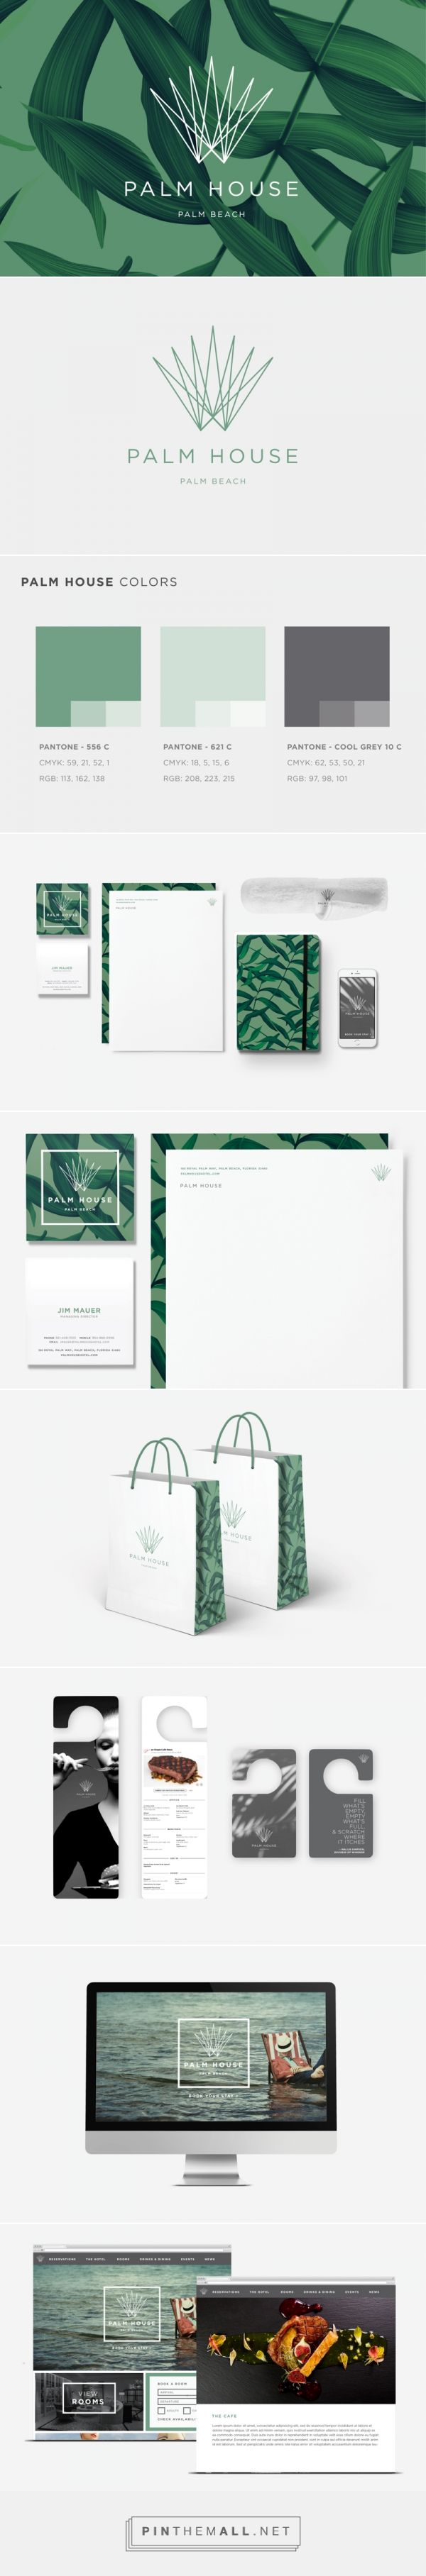 Palm House - Palm Beach by Saxon Campbell